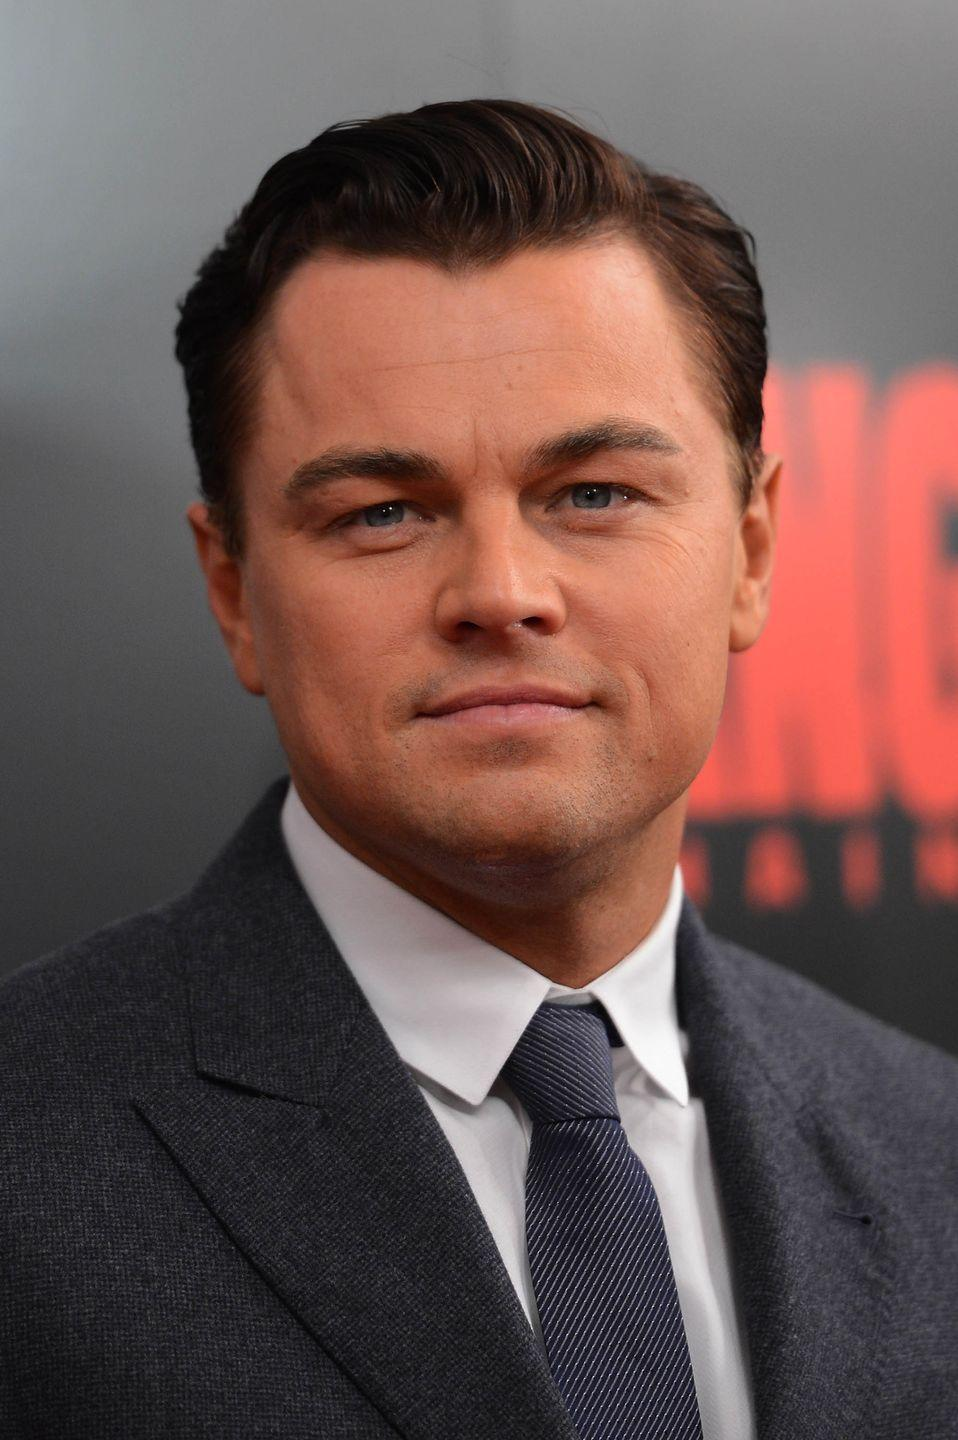 <p>While the amount of facial hair DiCaprio wears ebbs and flows, he's rarely rocked a clean shaven look since his younger days.</p>